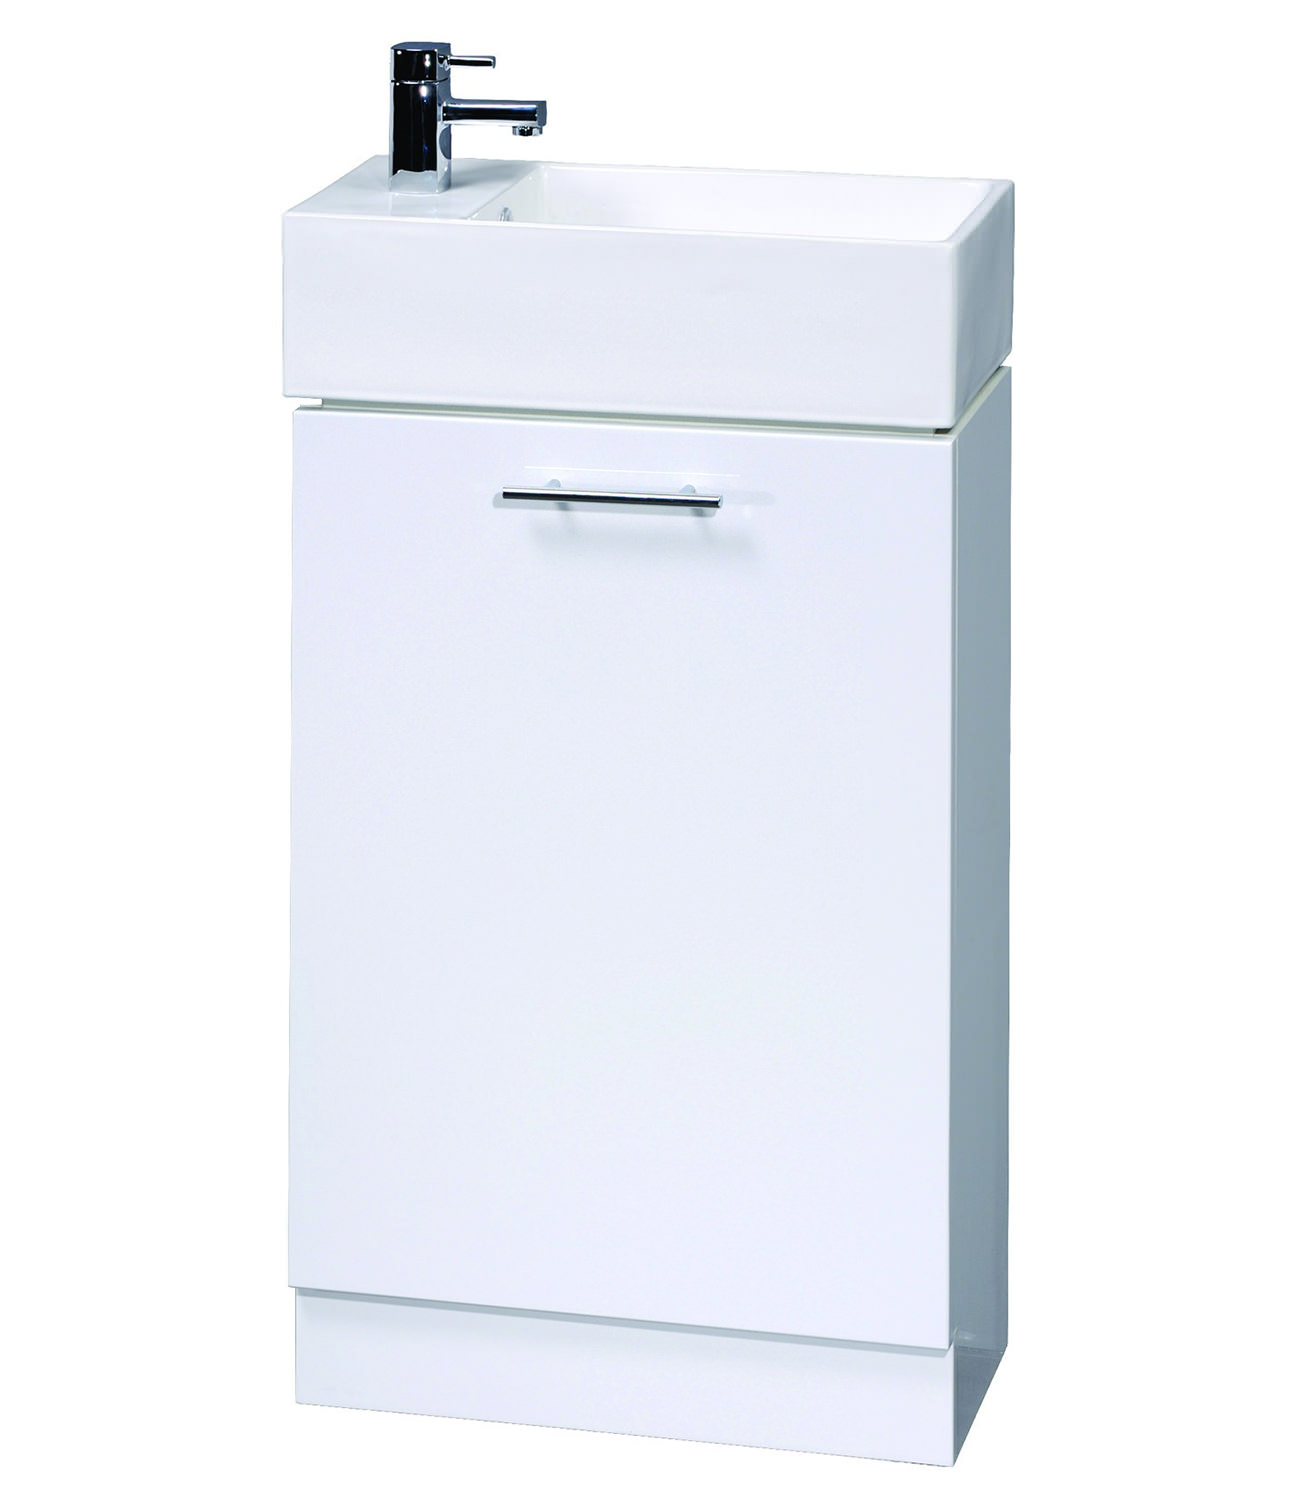 Aqva New England Small Bathroom Vanity Unit 475mm Vty058